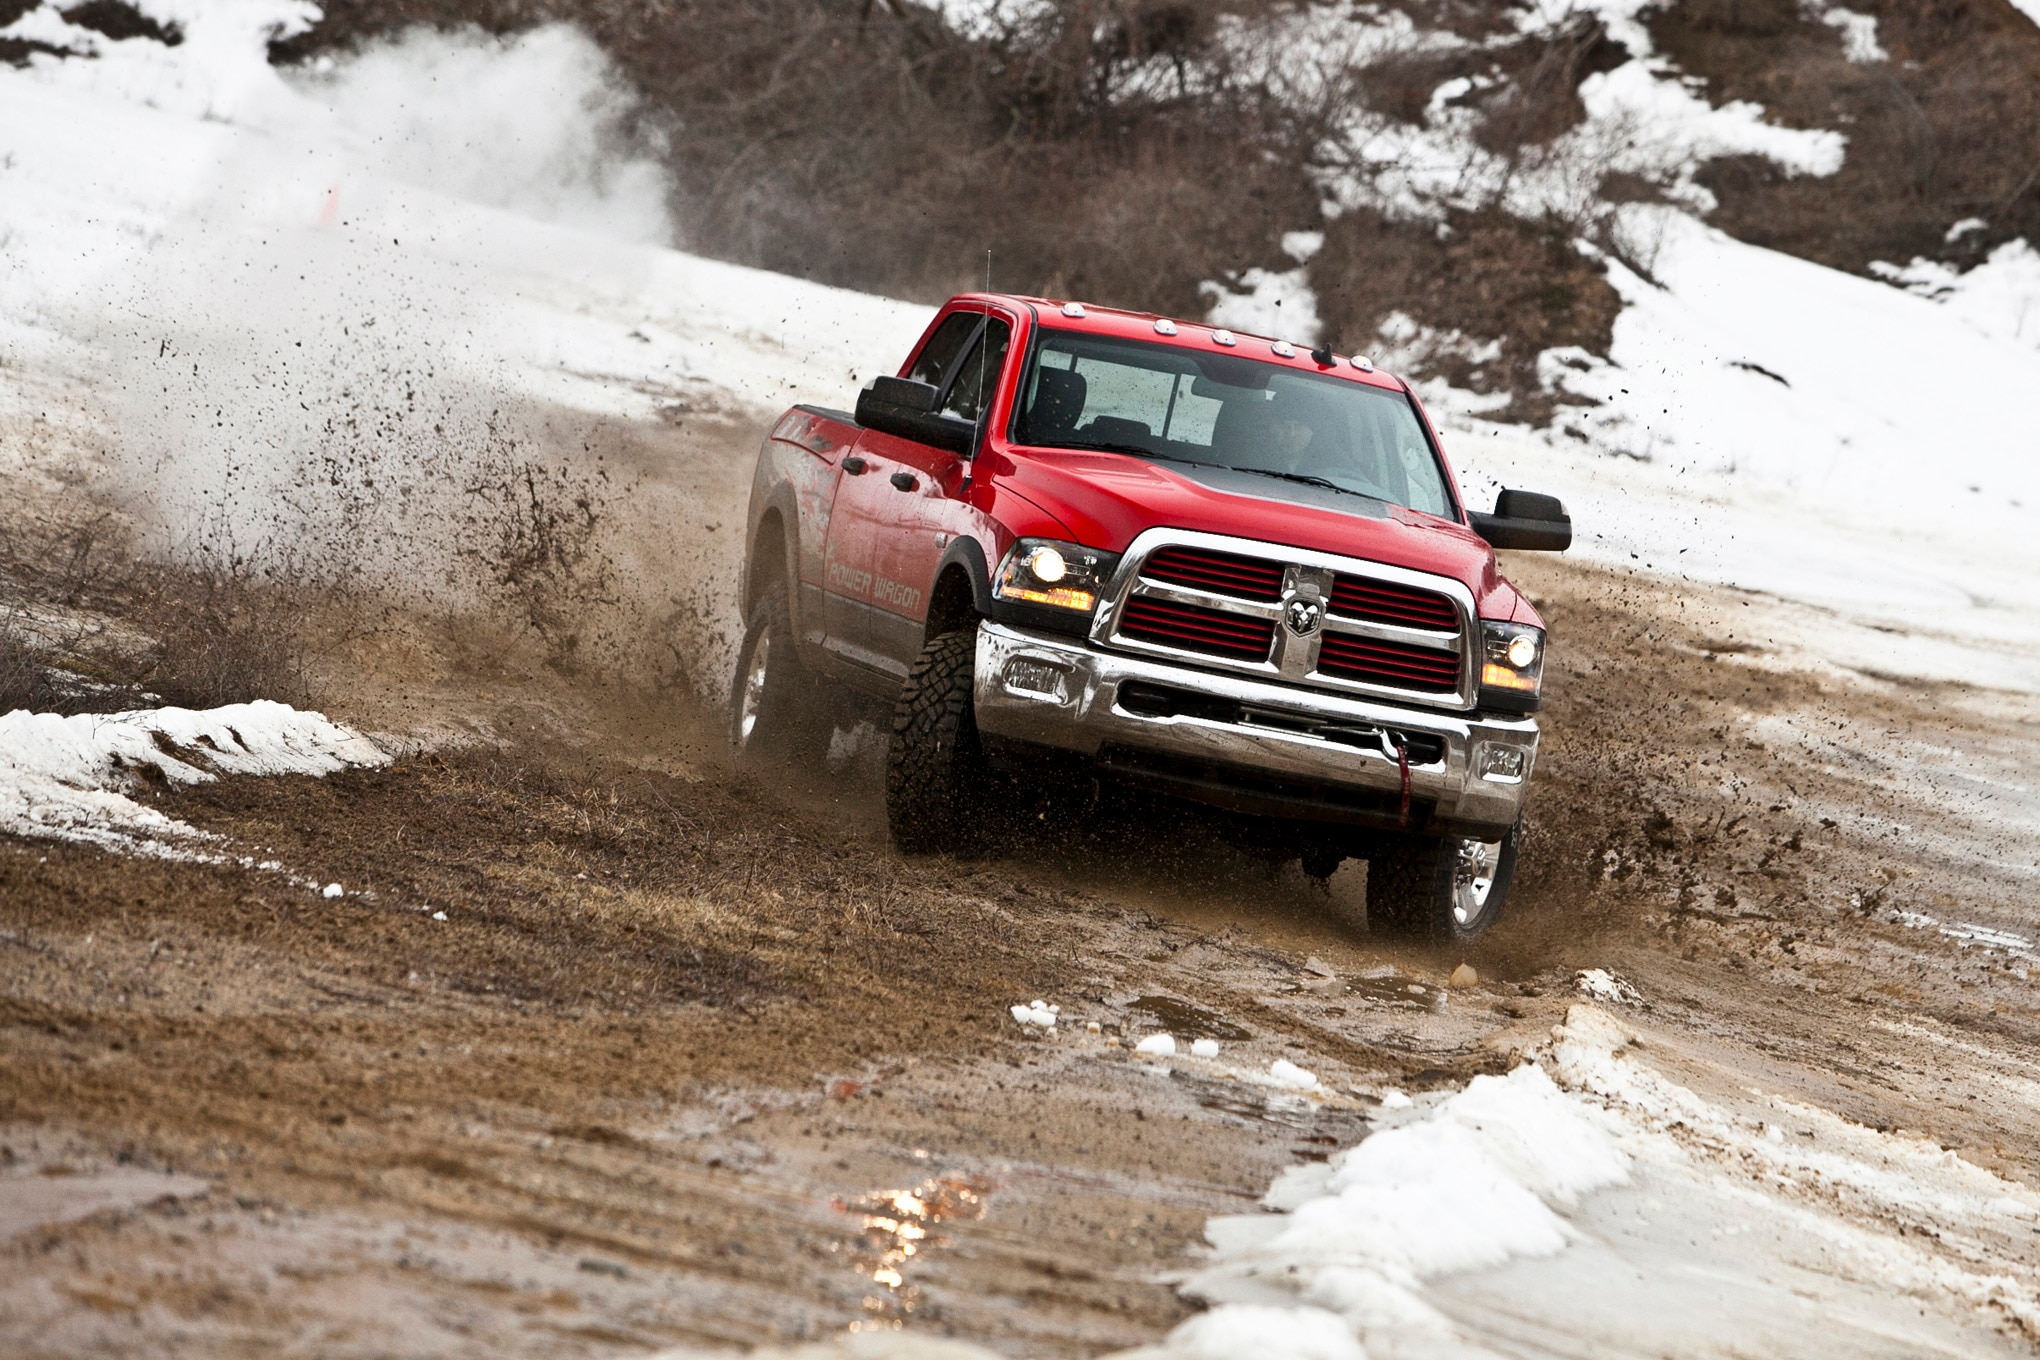 2014 Ram 2500 Power Wagon front three quarter in mud